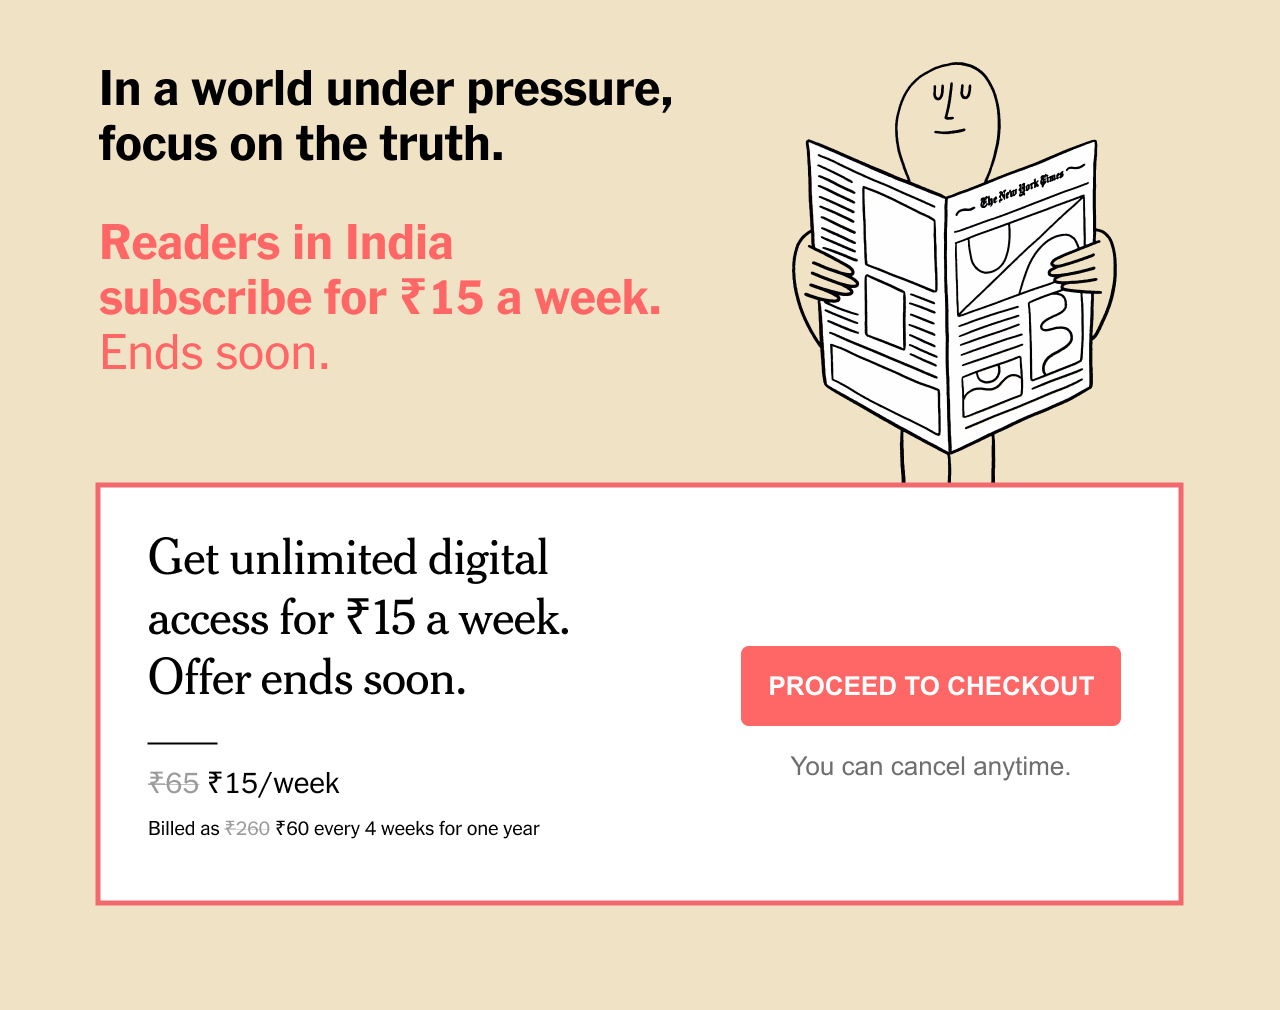 In a world under pressure, focus on the truth. Readers in India subscribe for 15 Rupees a week. Ends soon.